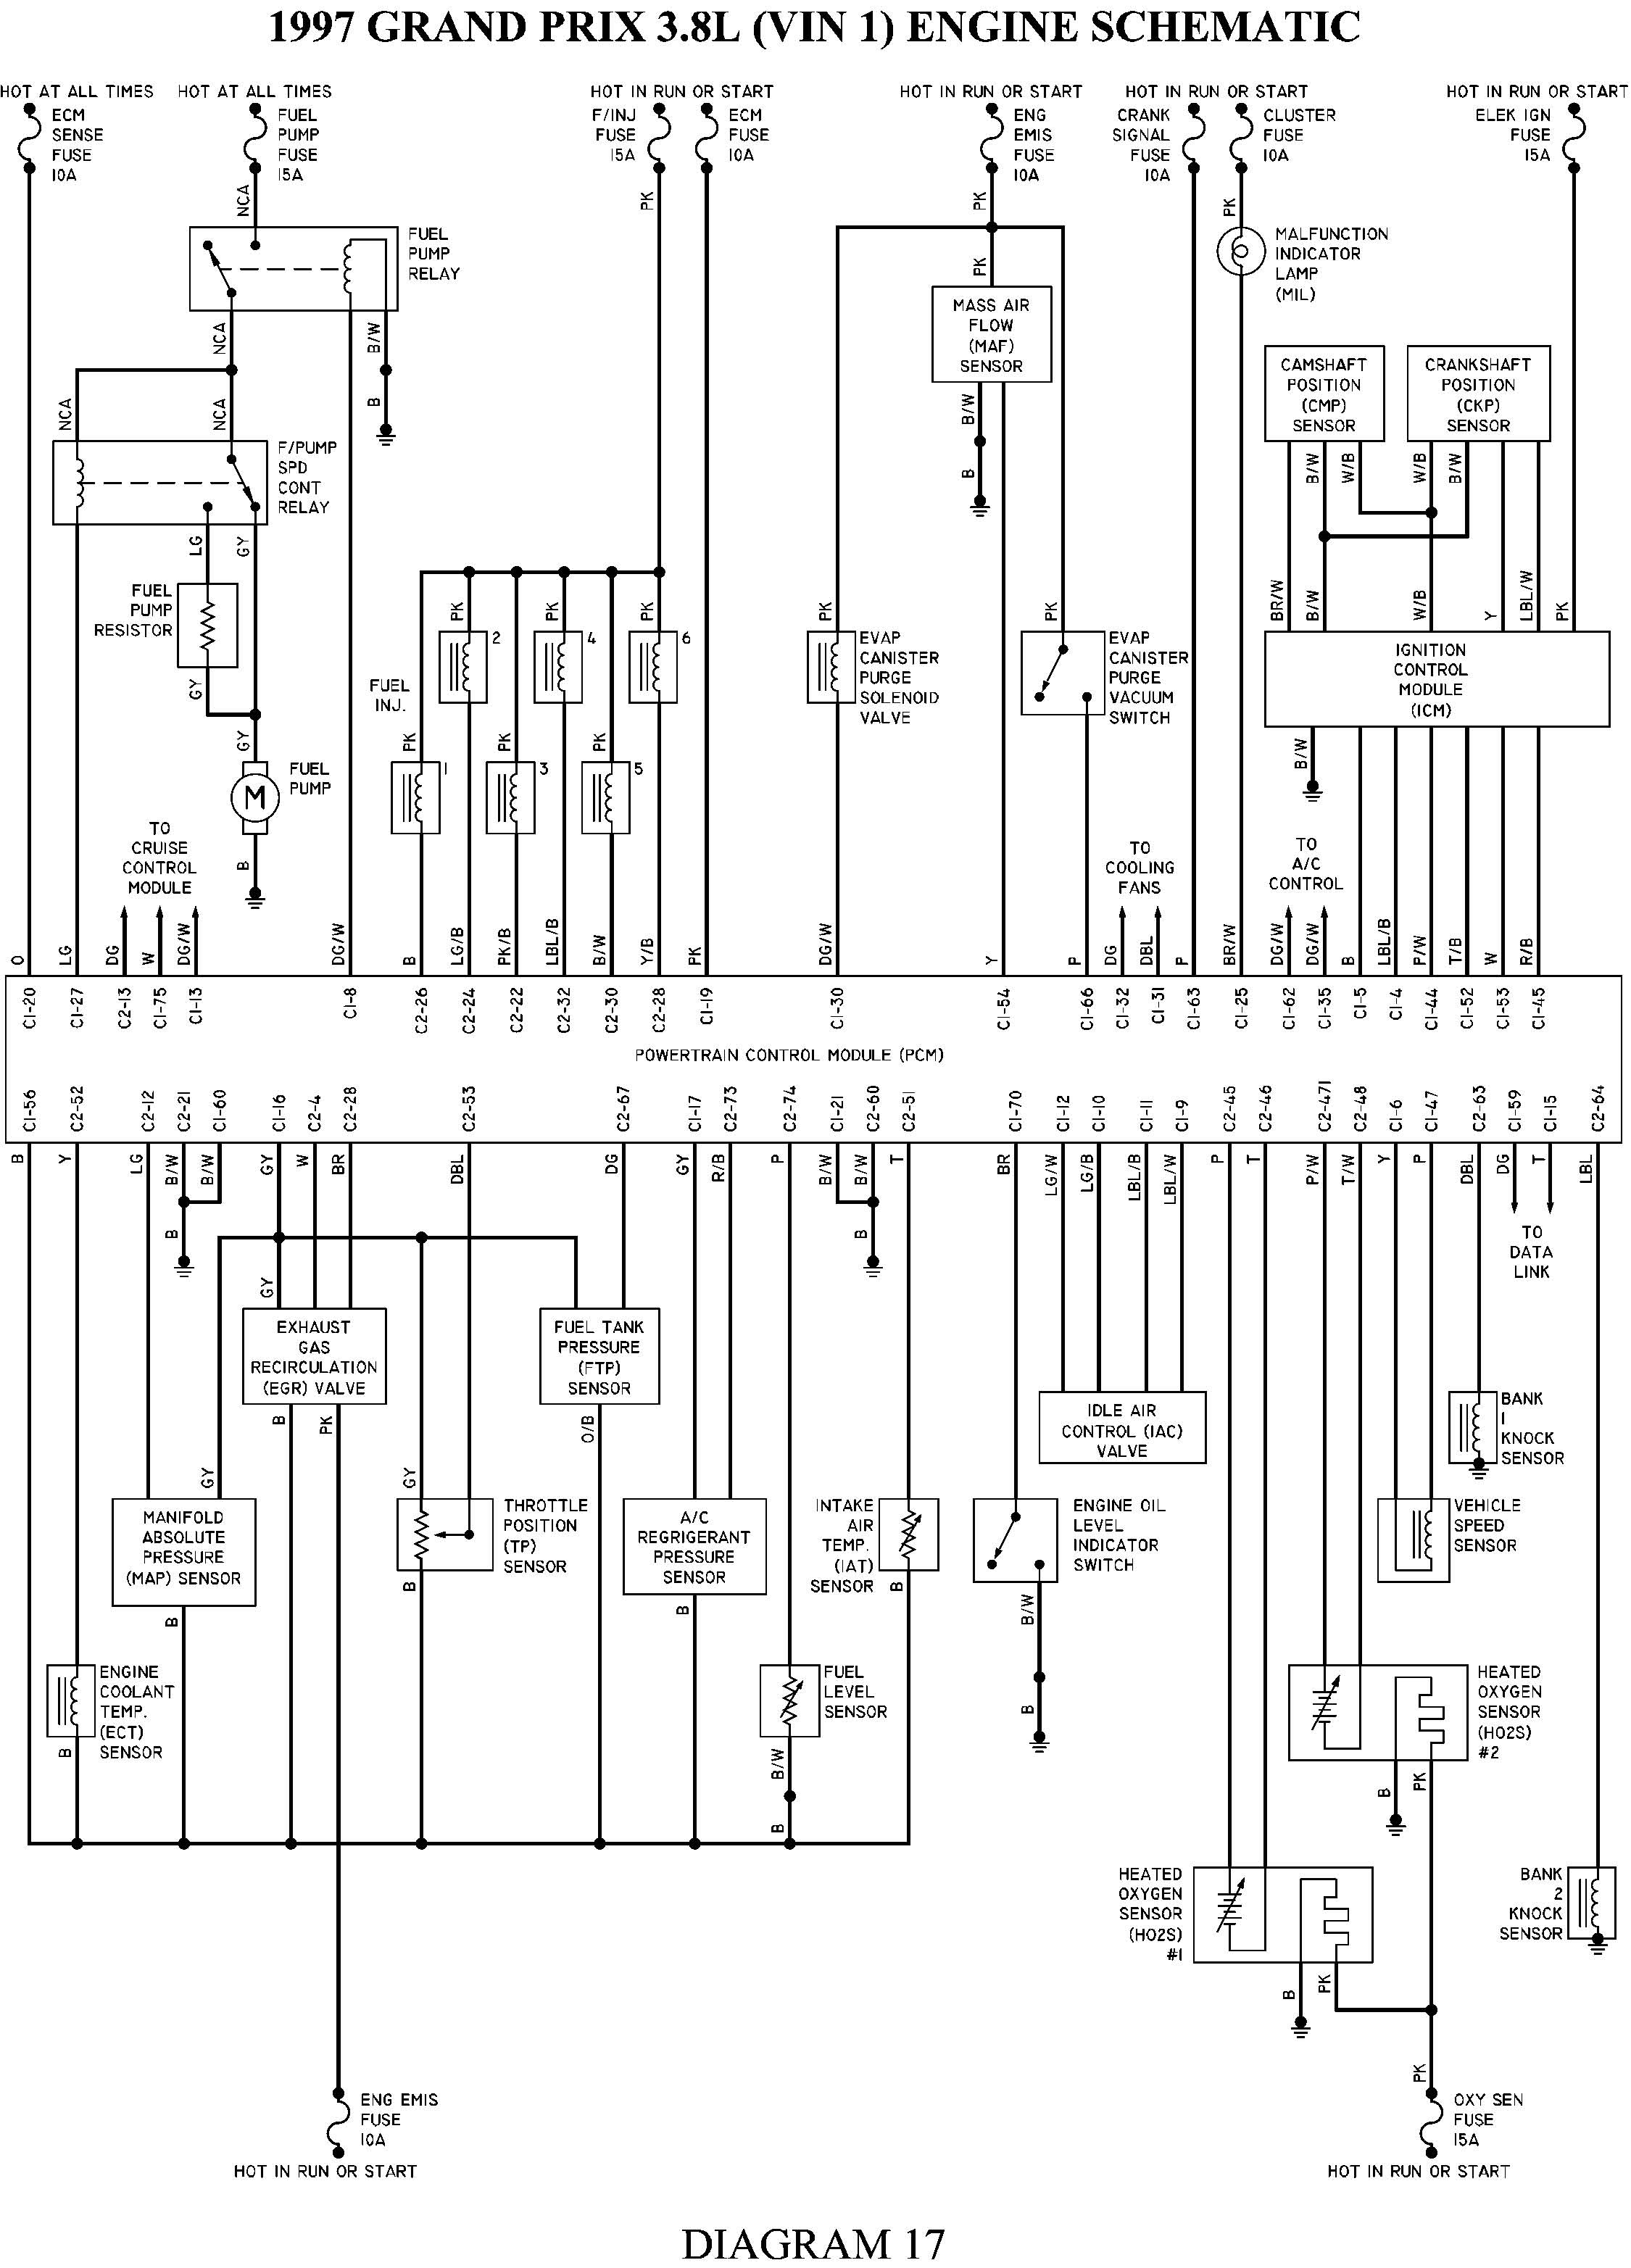 Excellent Pontiac Grand Prix Wiring Diagram Ideas Electrical And